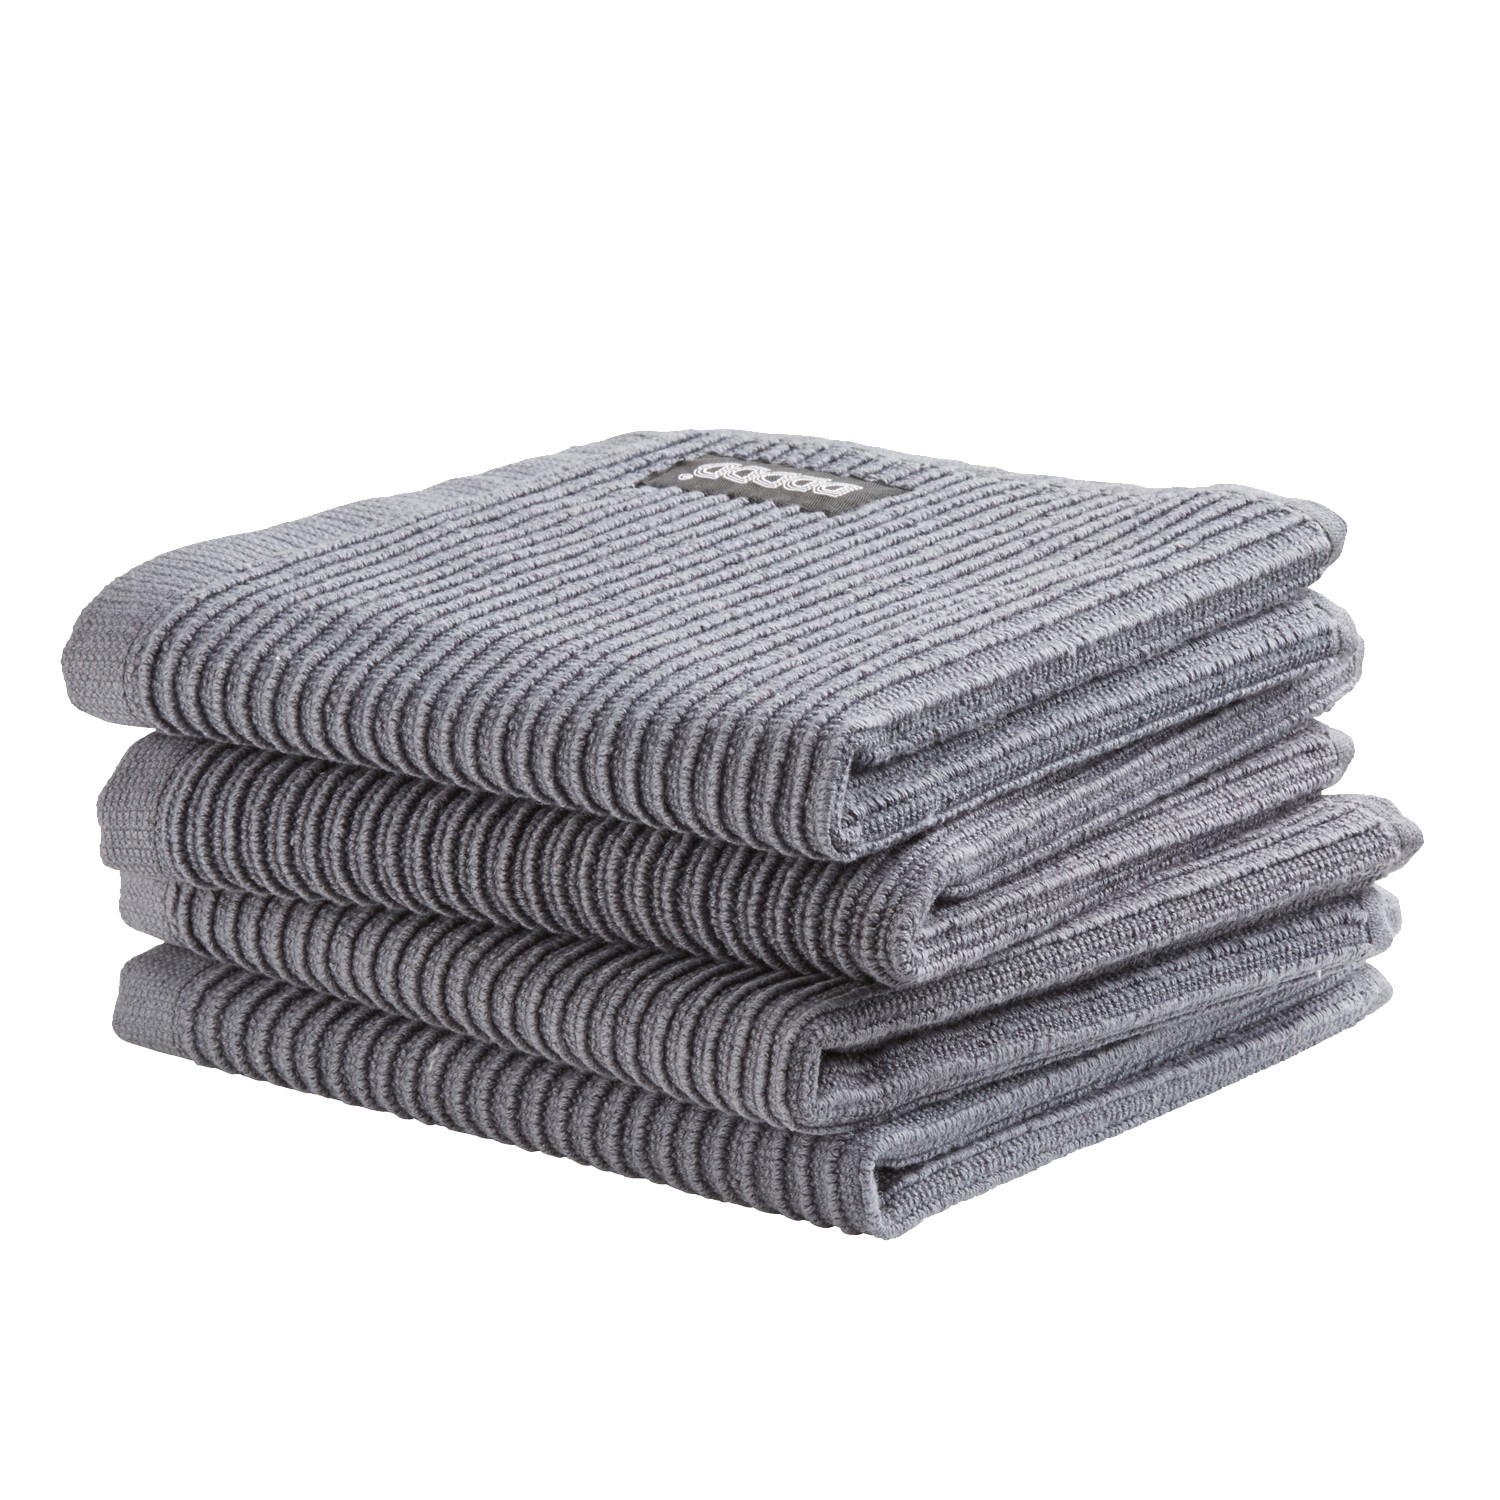 Vaatdoek Basic Clean | Neutral dark grey 30 x 30 cm